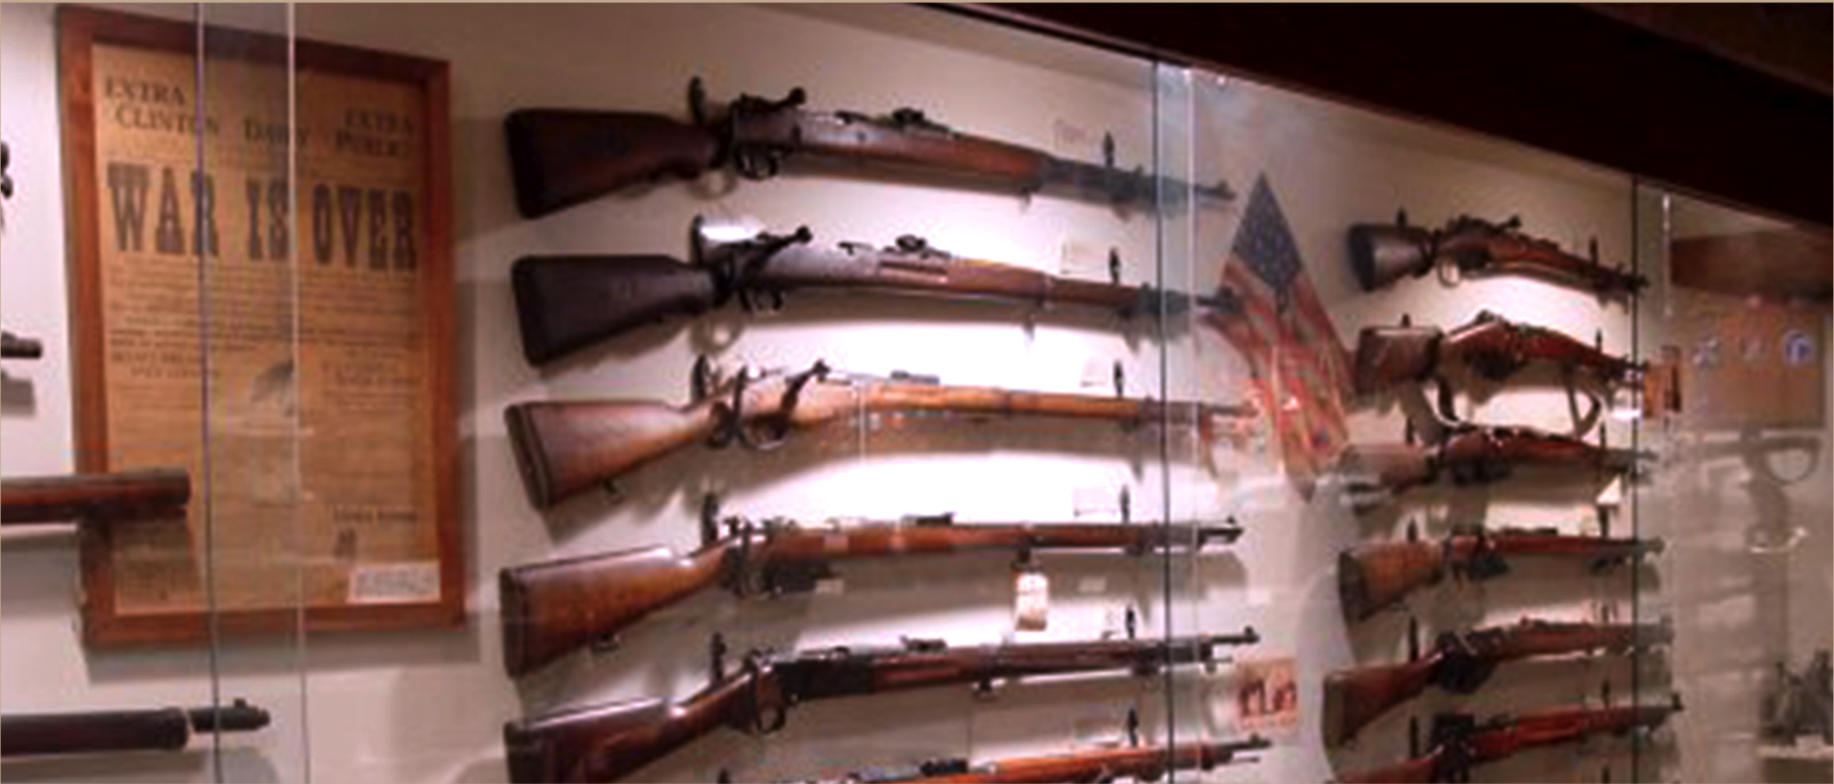 Wall glass case with historical rifles